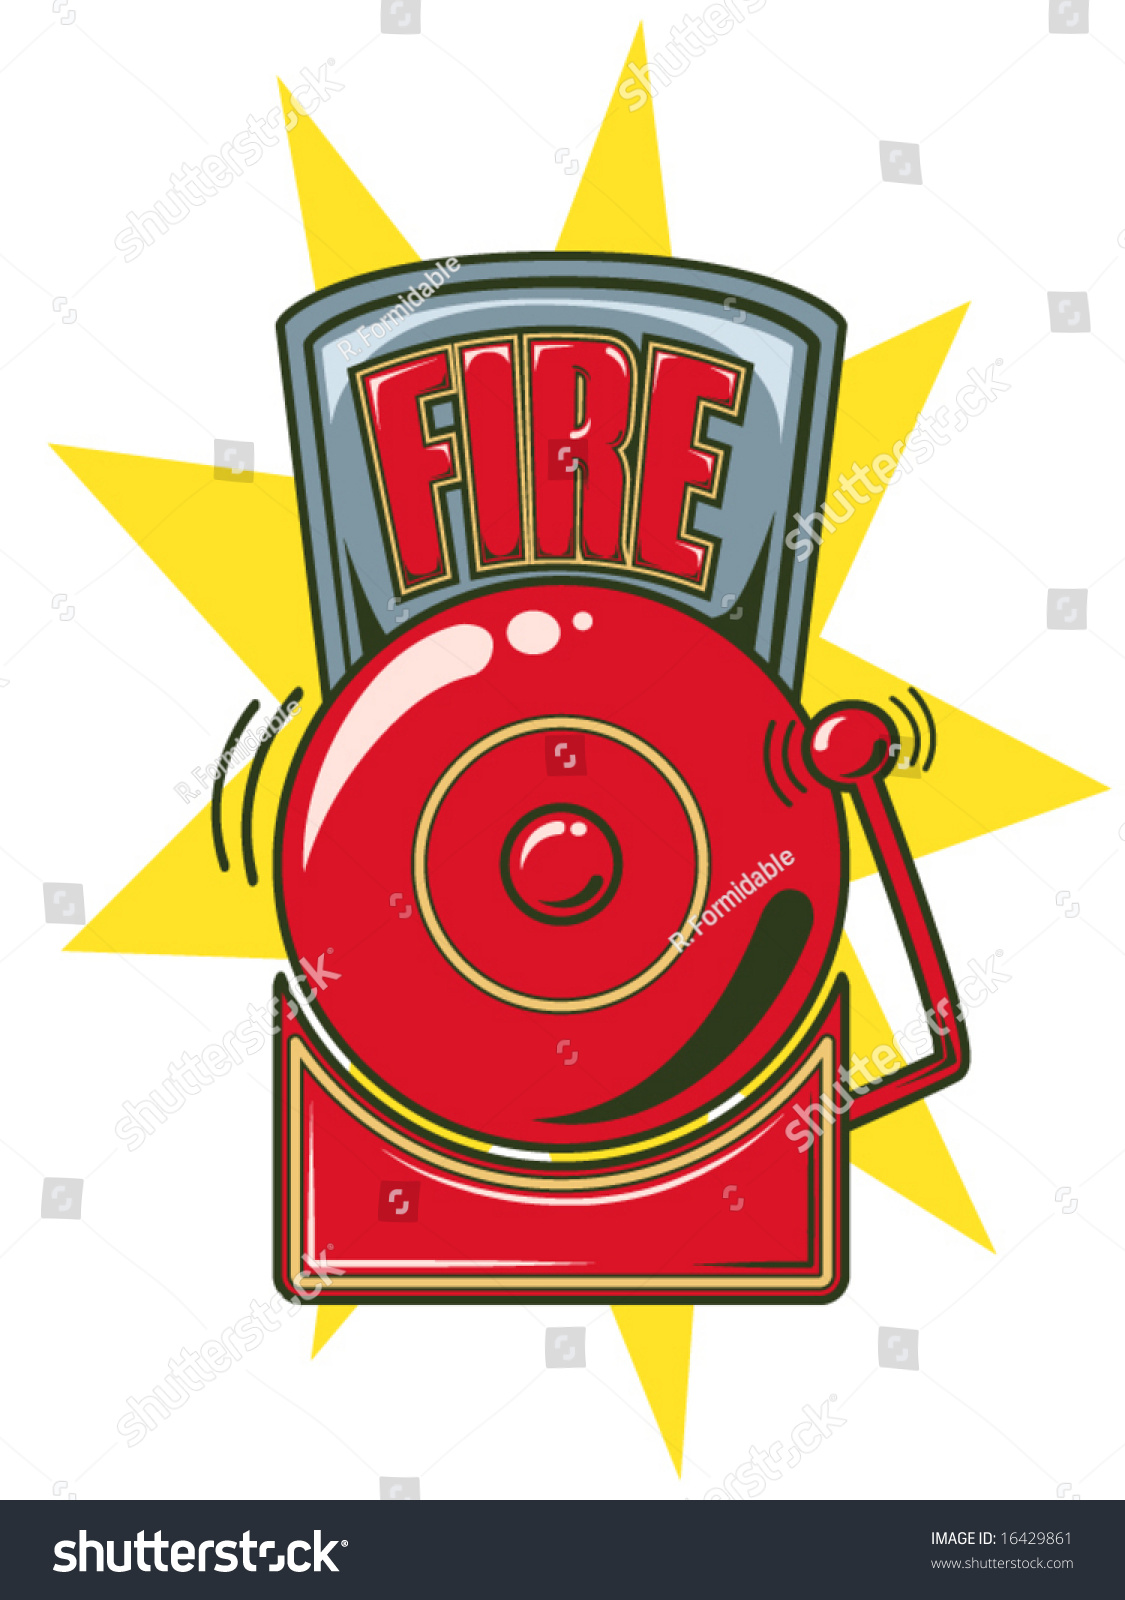 1 Fire Safety Design Principles moreover Surface Mounted Manual Call Point For Rafiki Twinflex Fire Alarm Systems moreover Emergency Lighting moreover 201 Fire Safety And Prevention Tips additionally Do I Need Accessible Toilet  partments Ada Guidelines. on fire extinguisher diagram